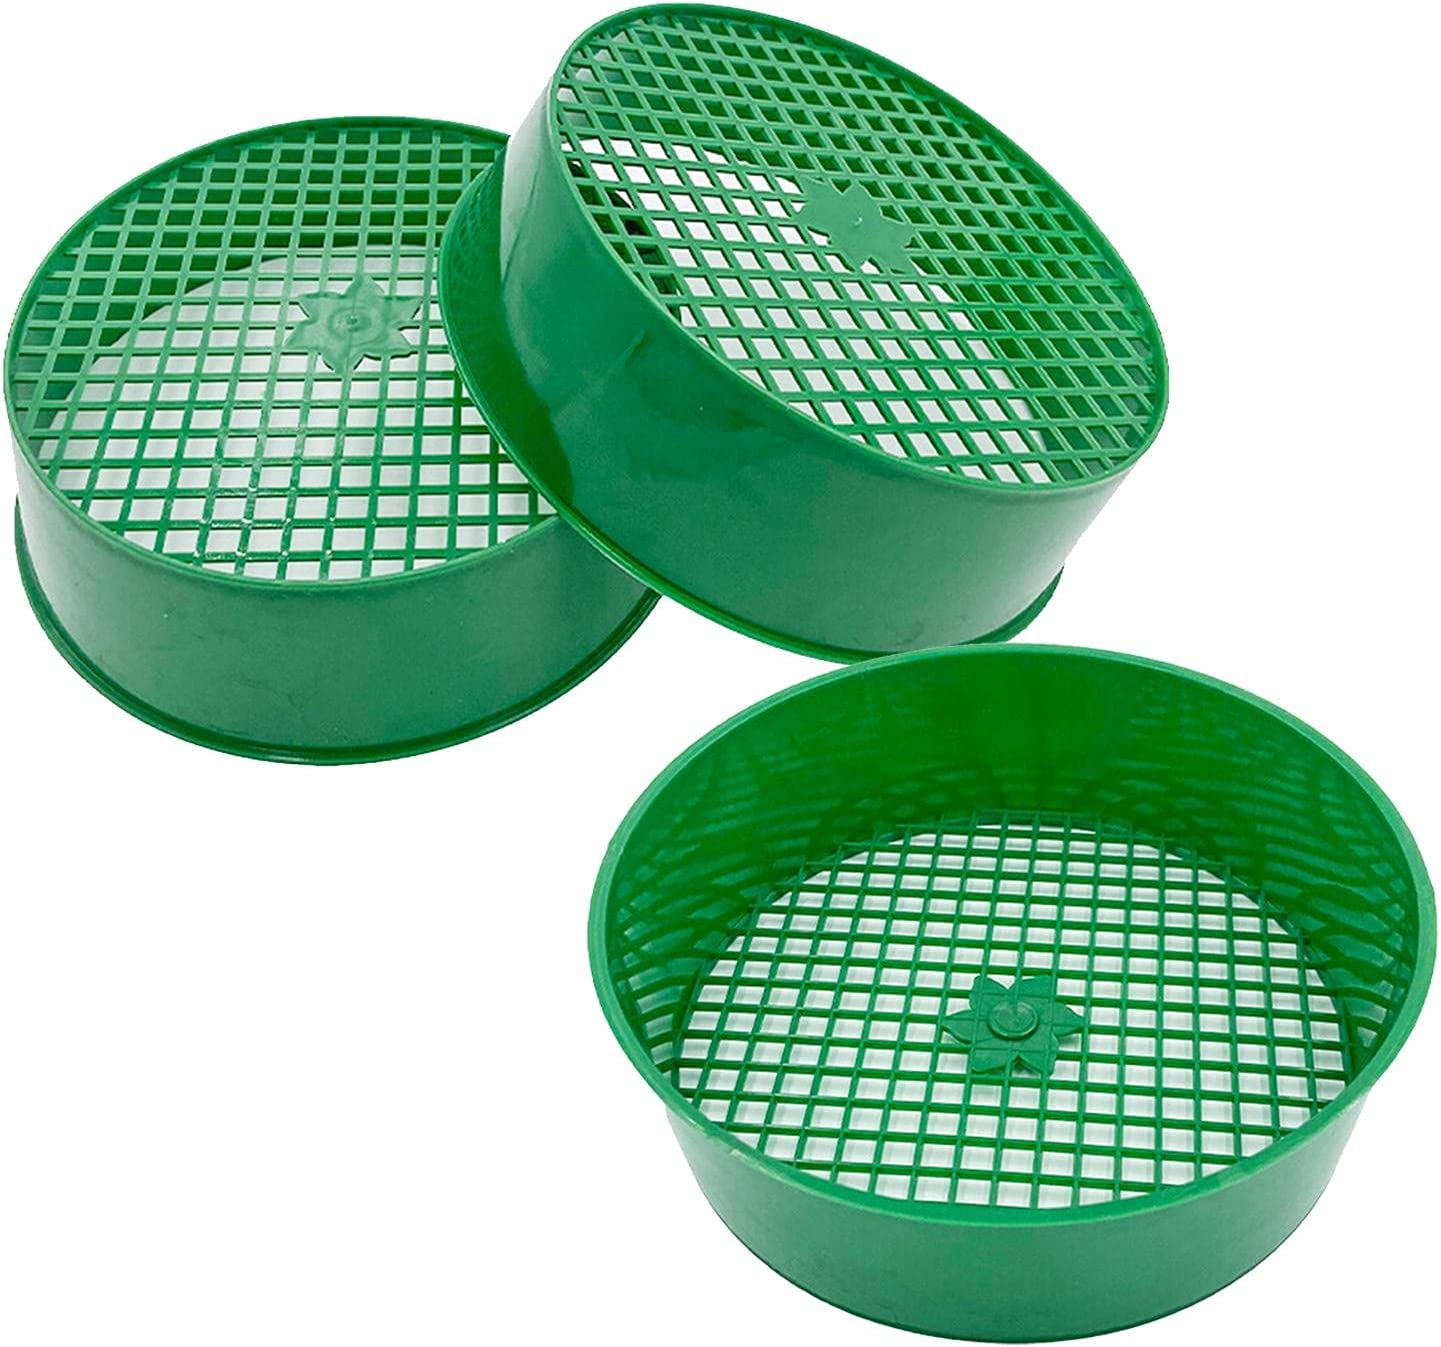 ershixiong Garden Sifting Pan 3PCS 1set New Orleans Mall Riddl Soil Sieve Max 44% OFF